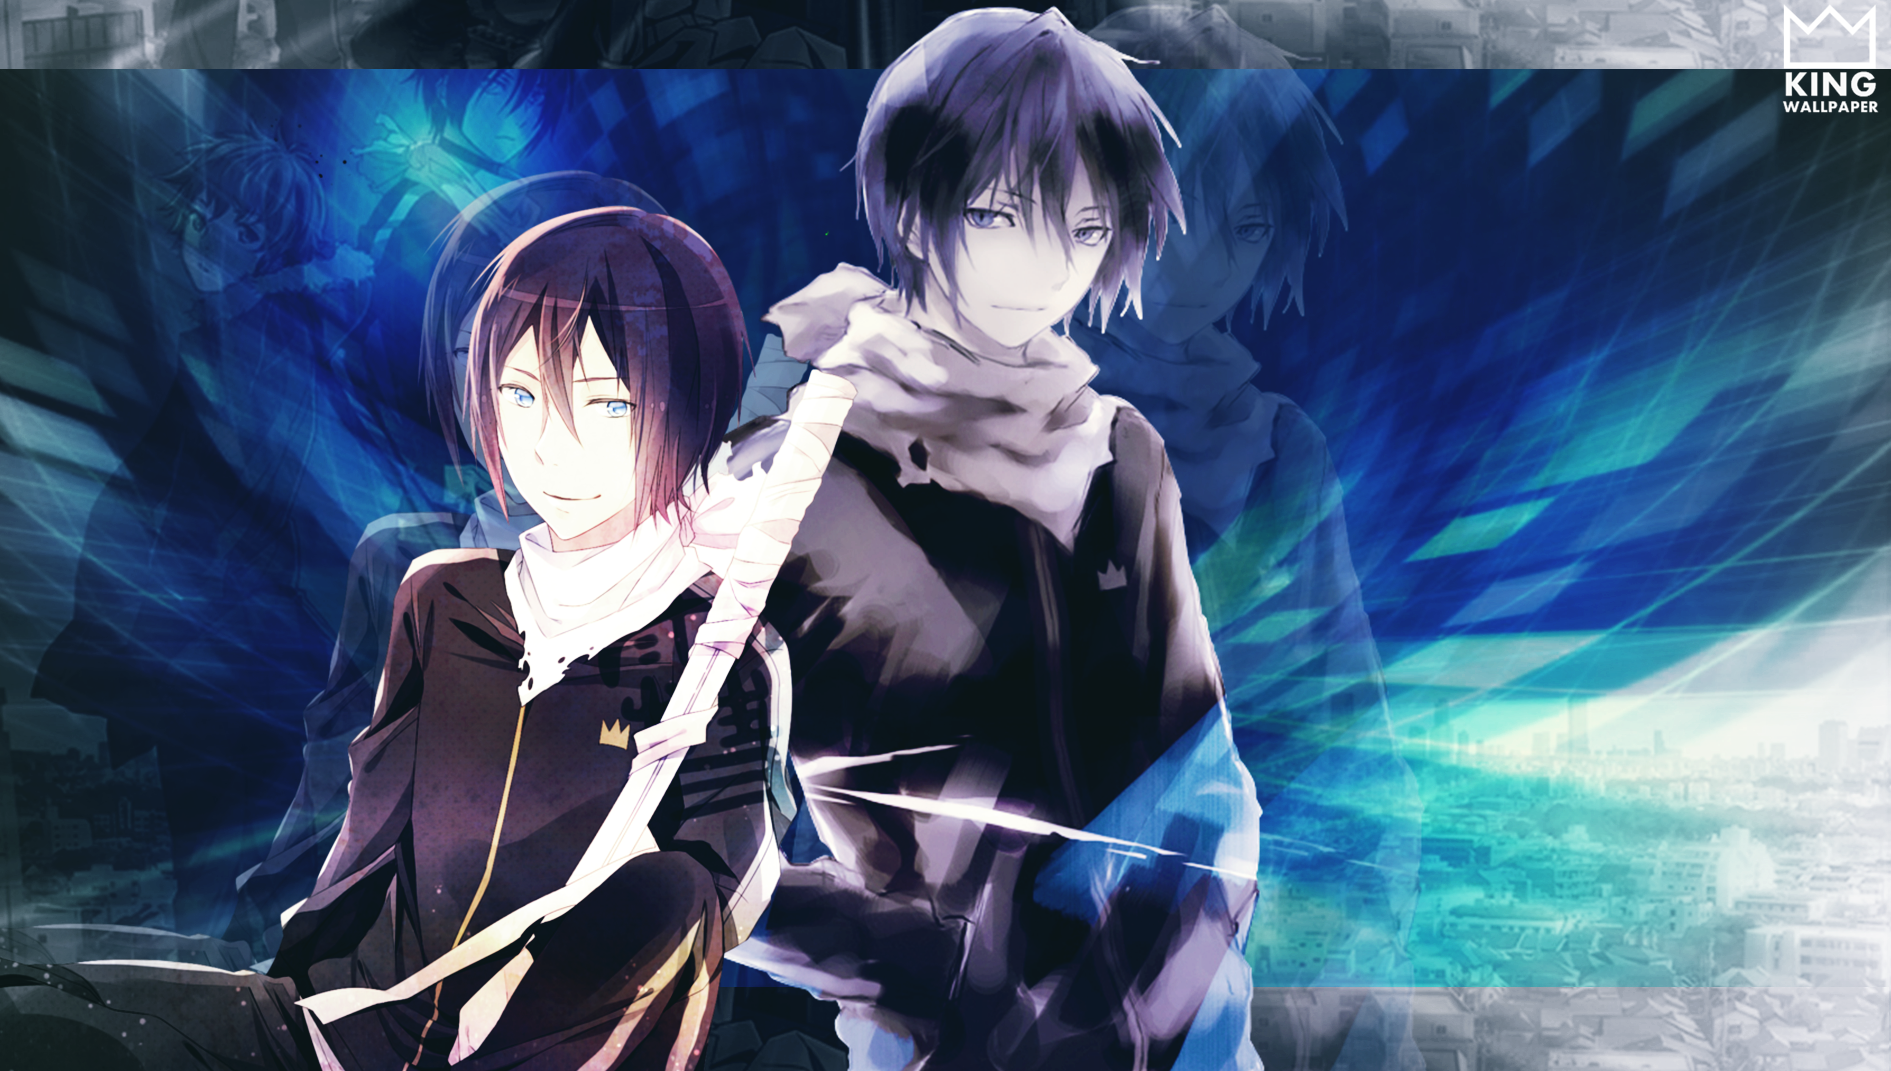 imagen noragami wallpaper by - photo #6